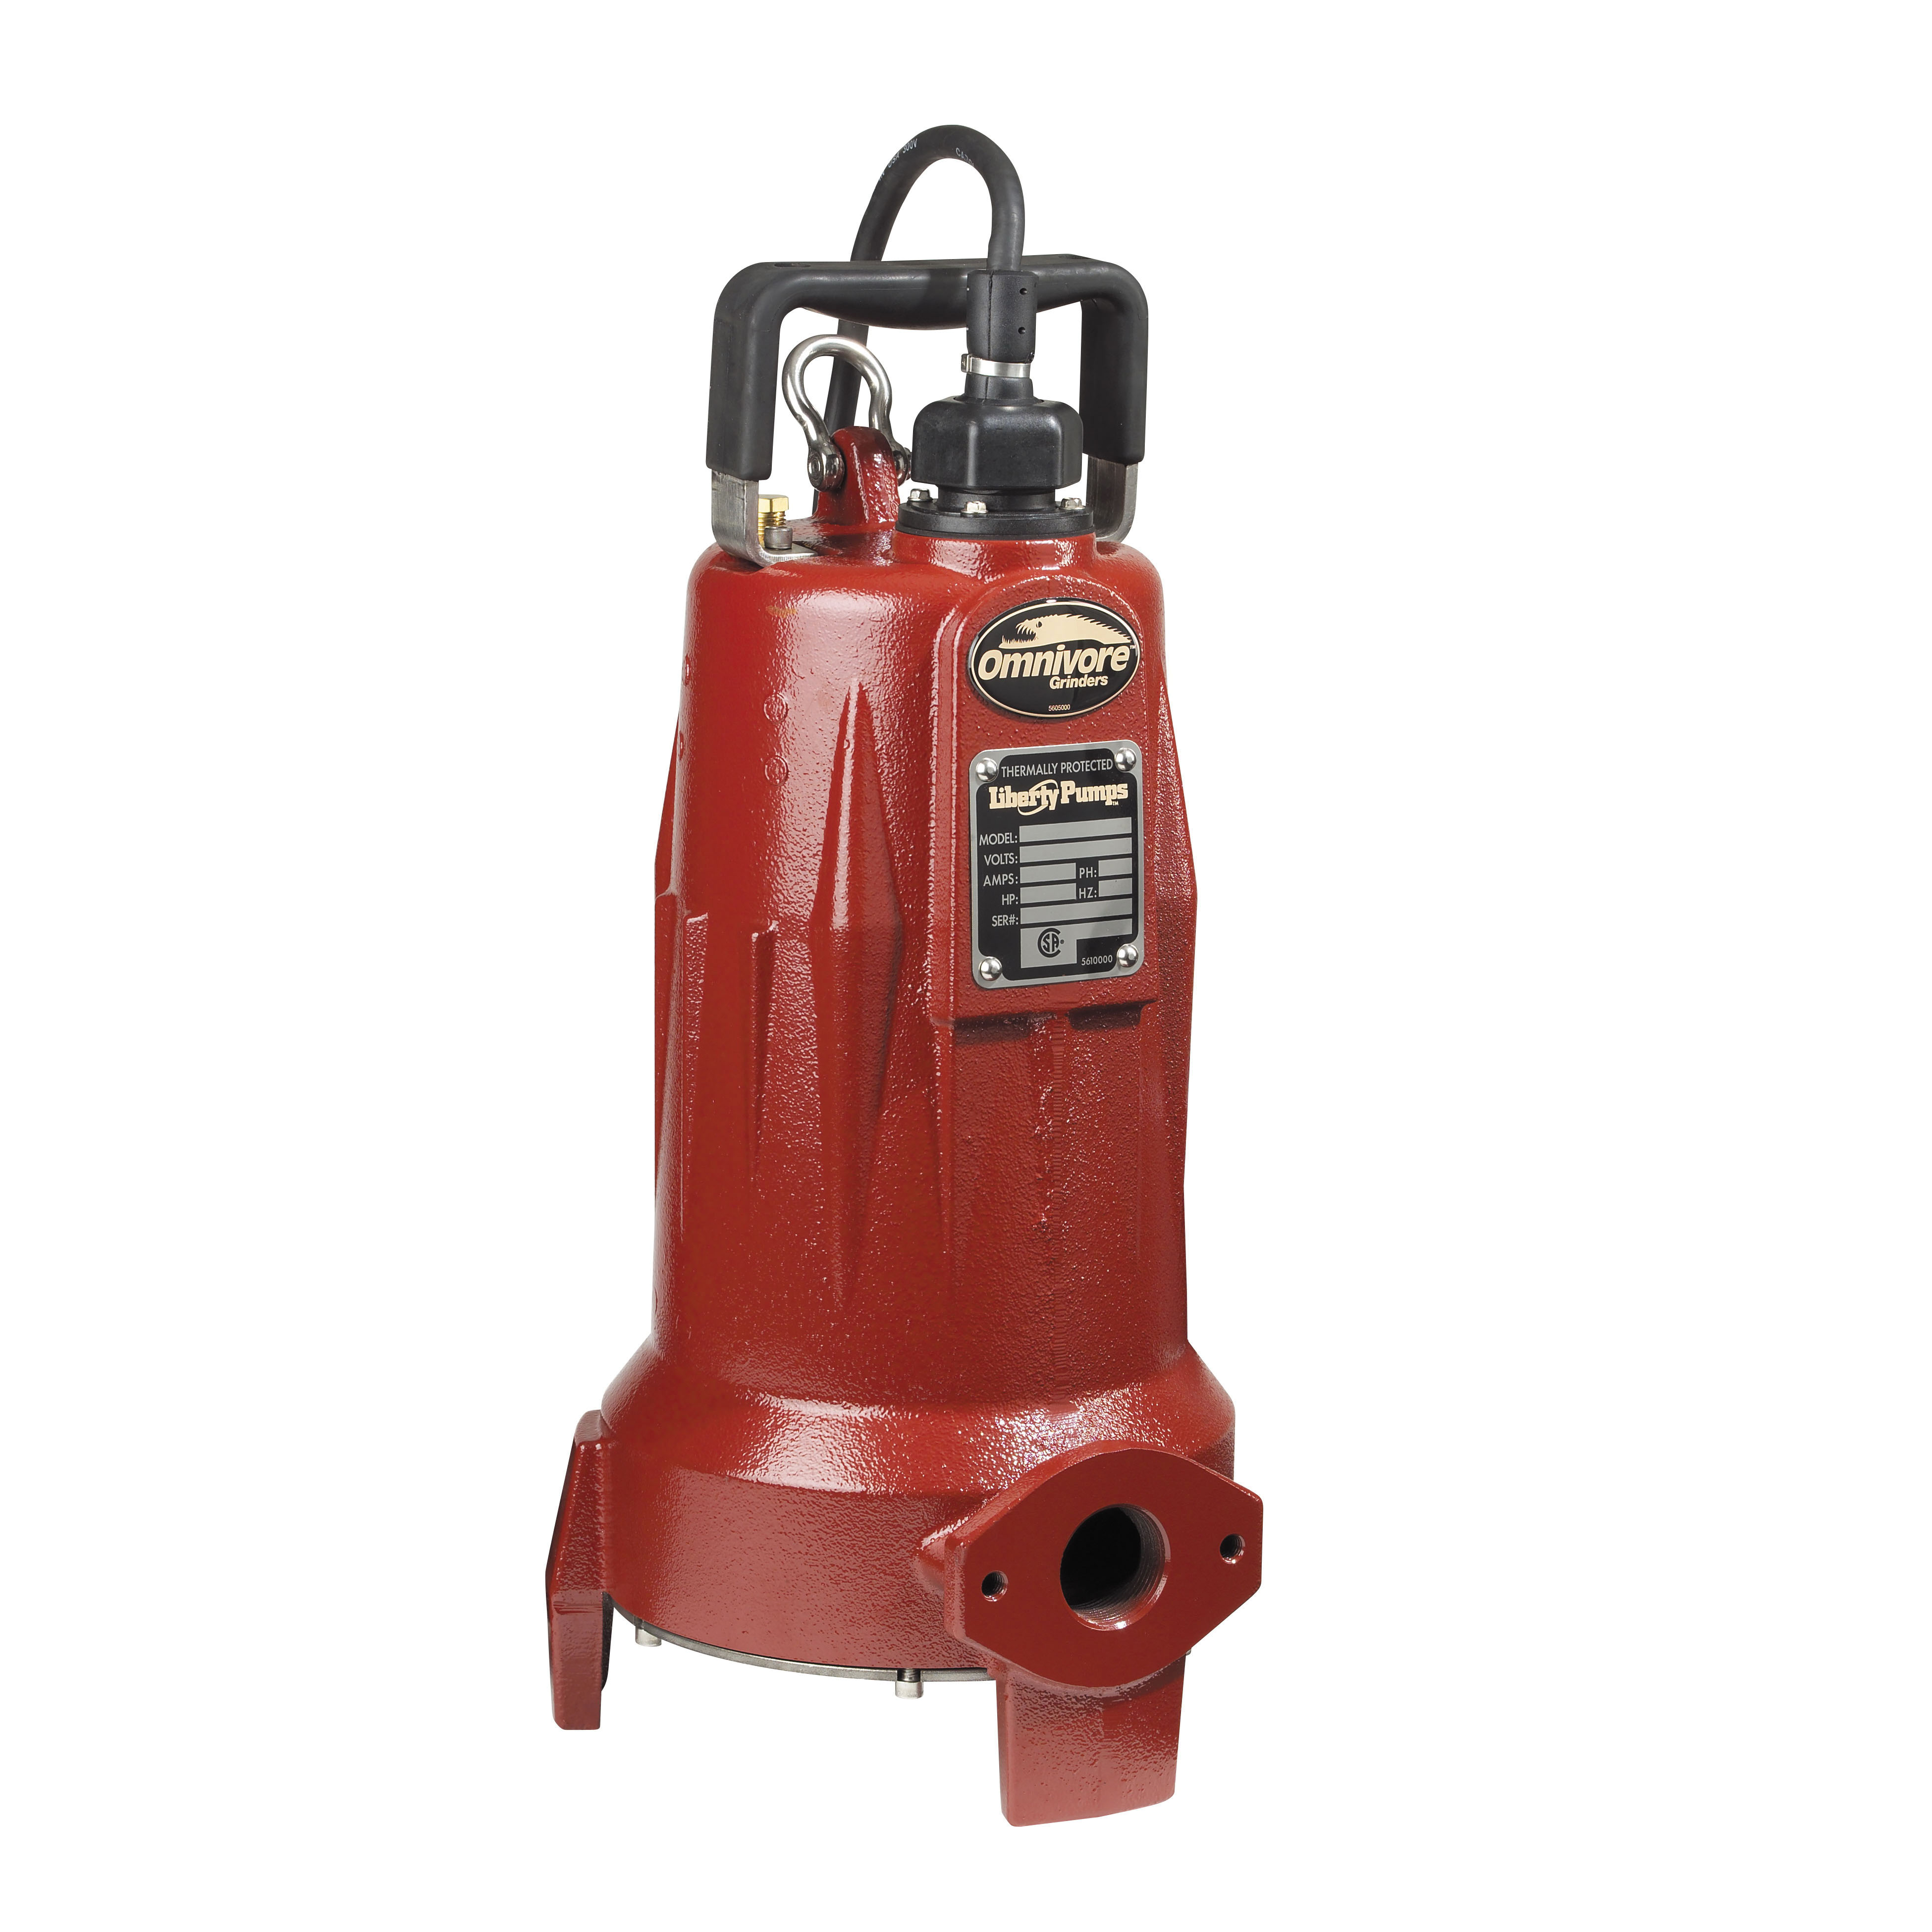 Liberty Pumps® Omnivore® LSG202M 1-Stage Submersible Grinder Pump, 50 gpm Max Flow, 10 ft Rated Head, Non-Automatic, 110 ft Max Head, 208 to 230 VAC, 1 ph